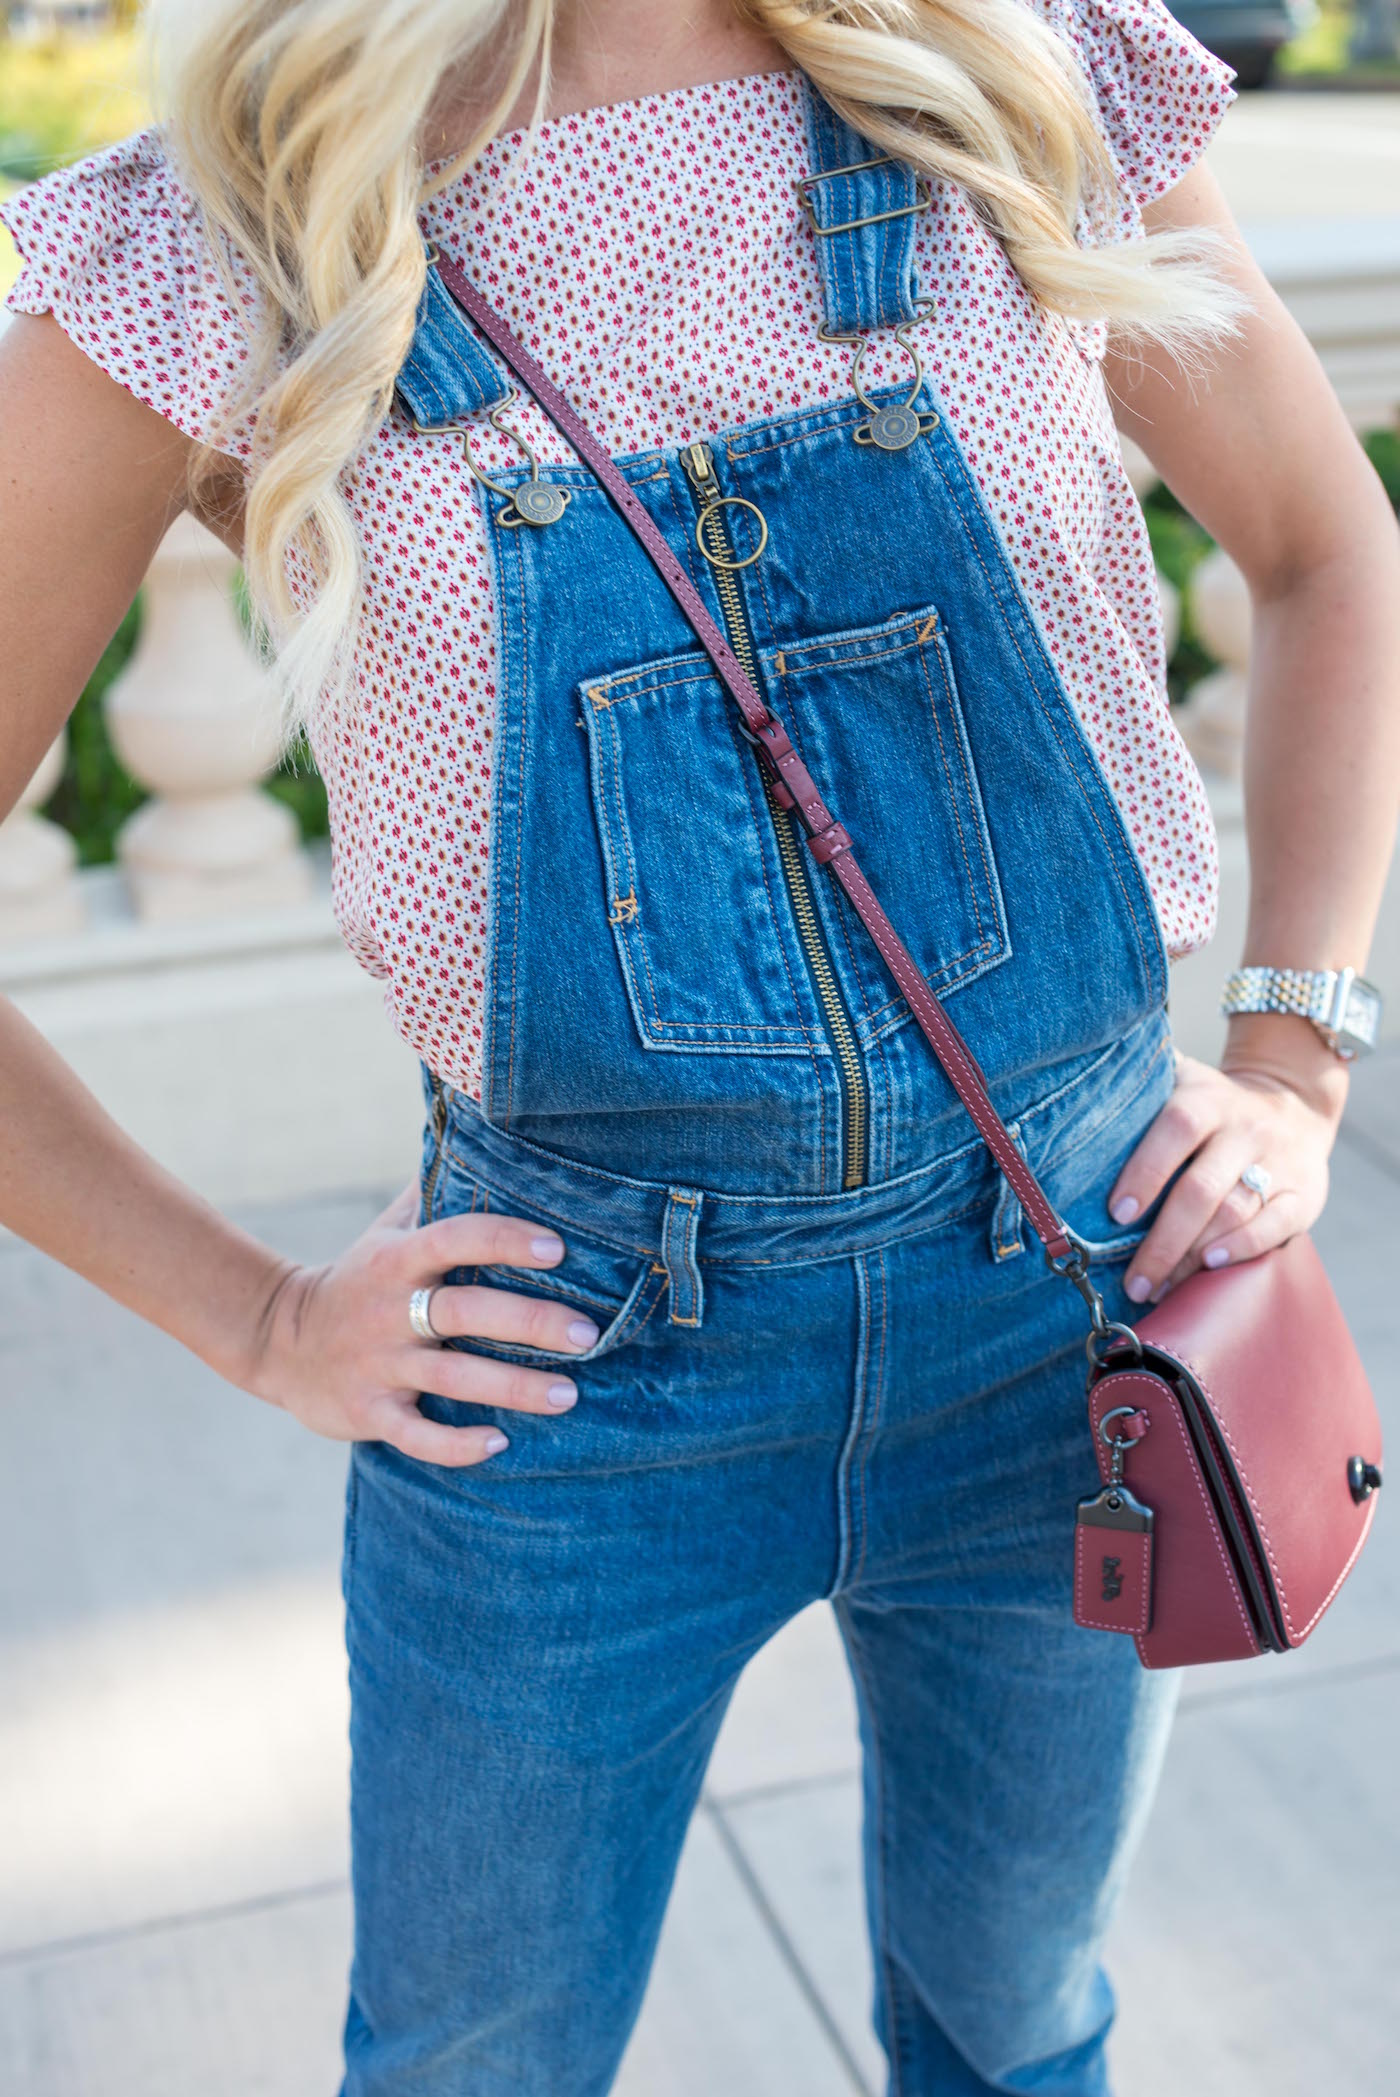 Levis Overalls with Little Apply Ruffle Blouse